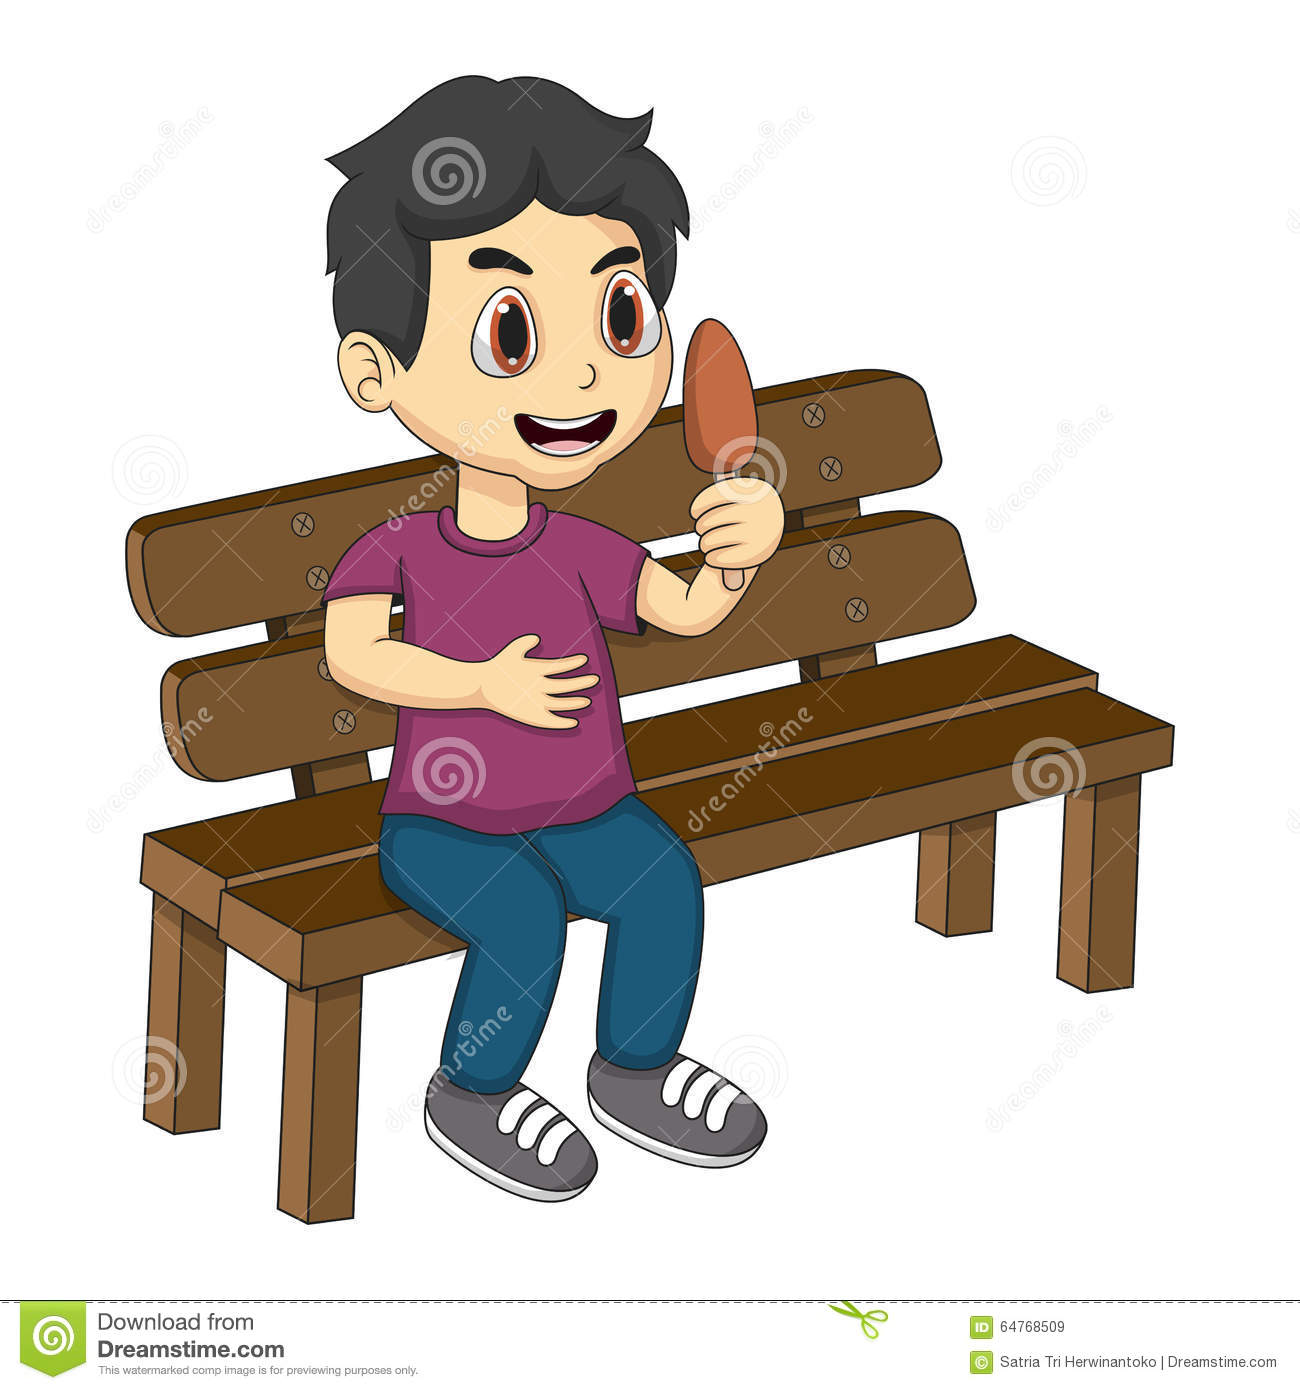 Little Boy Sitting On A Bench Eating Ice Cream Cartoon